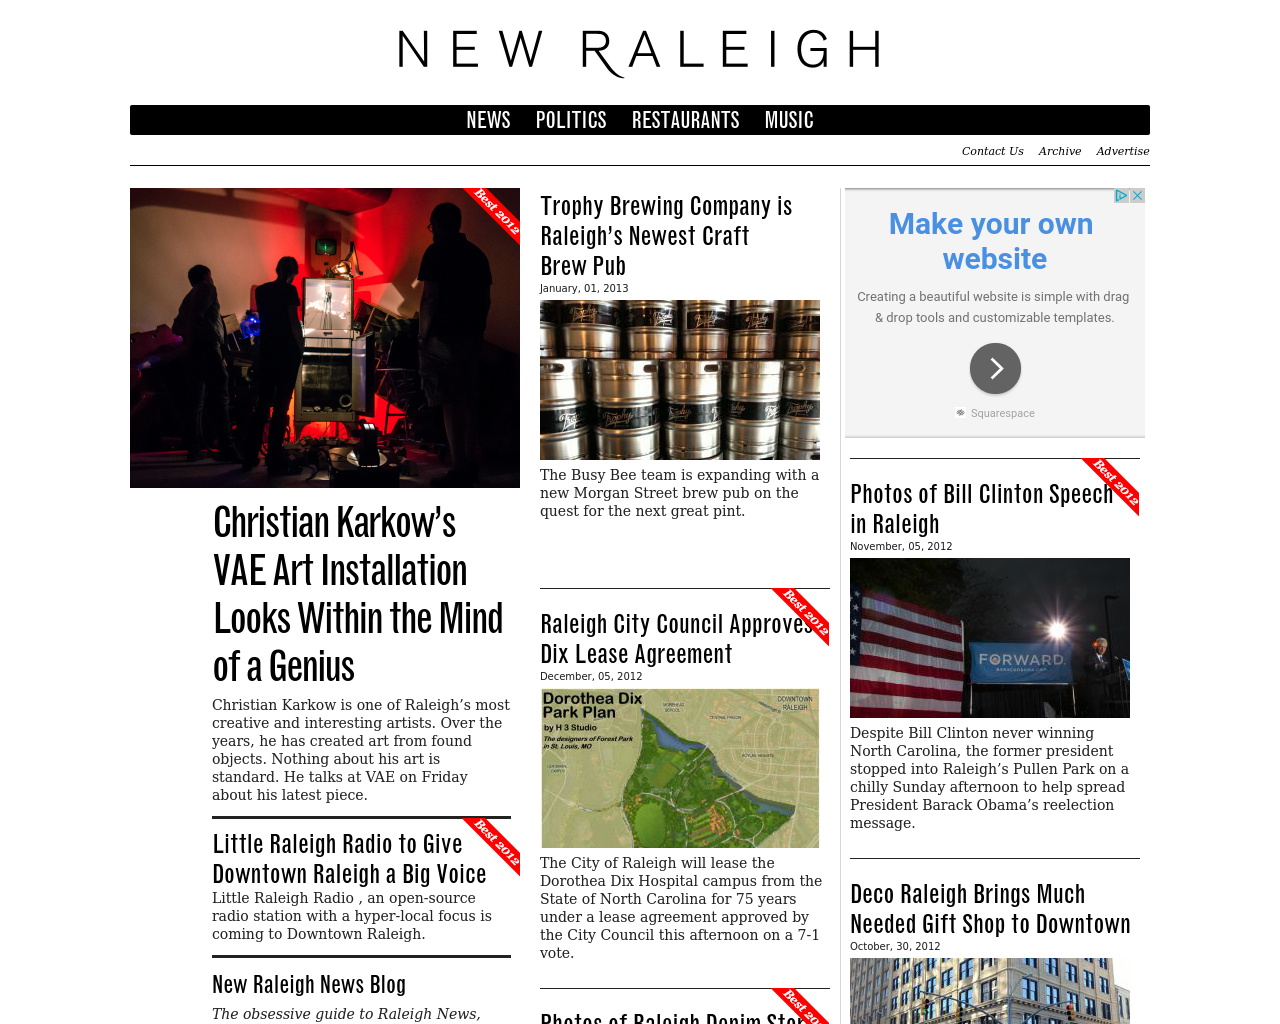 New-Raleigh-Advertising-Reviews-Pricing